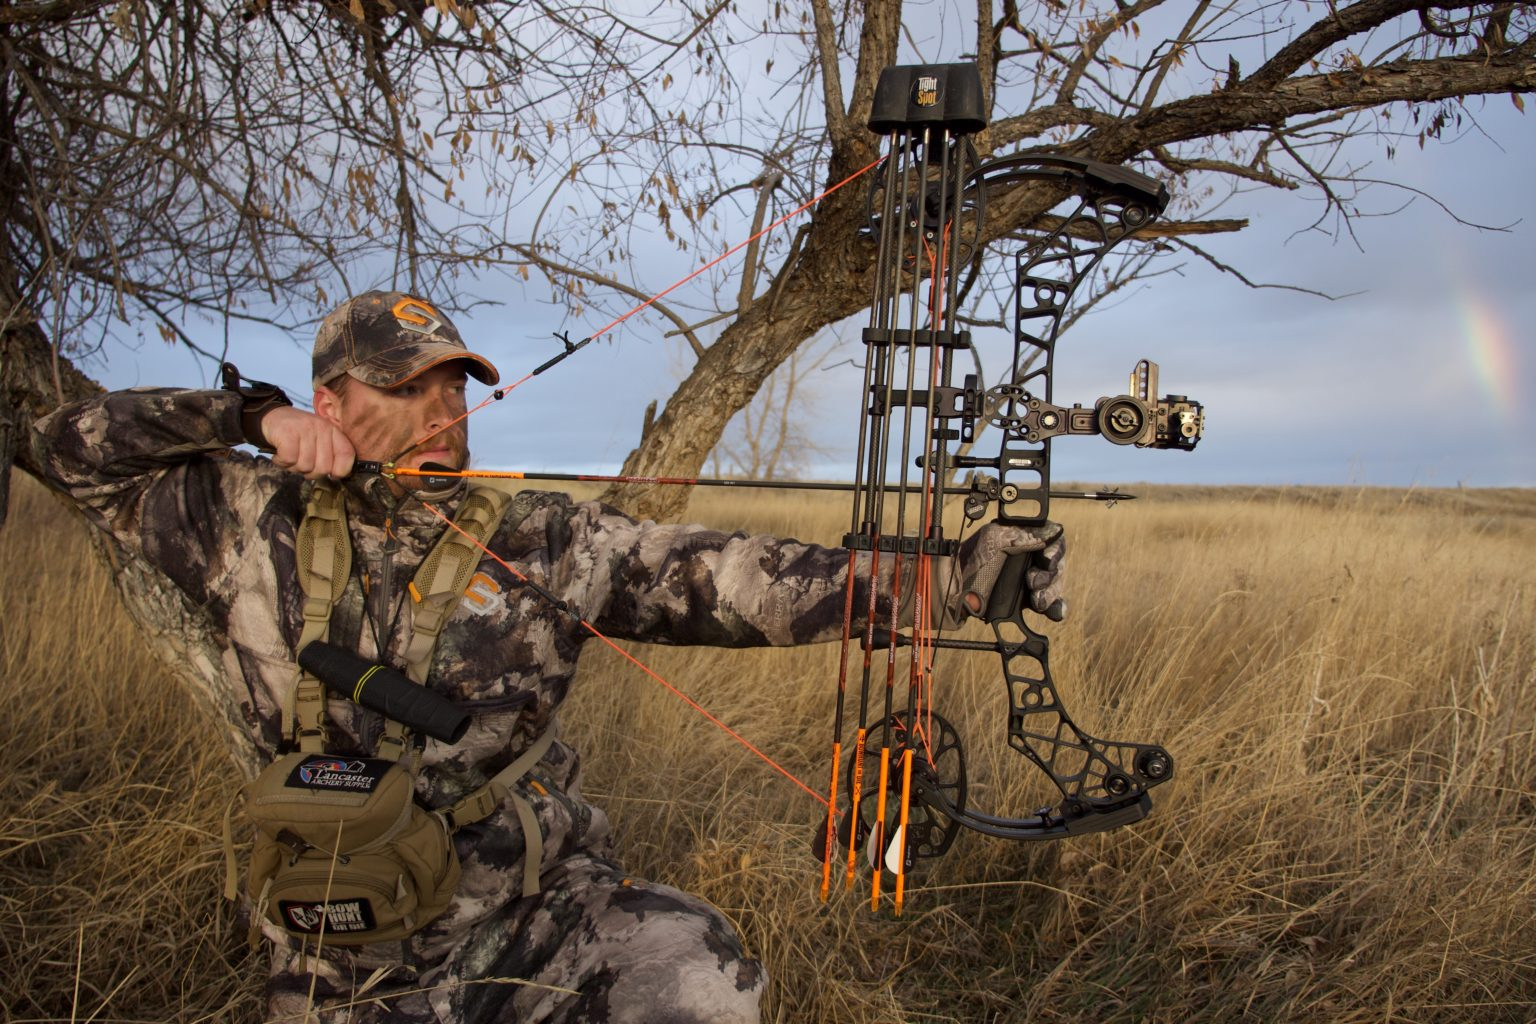 Arrow Quivers For Bowhunting